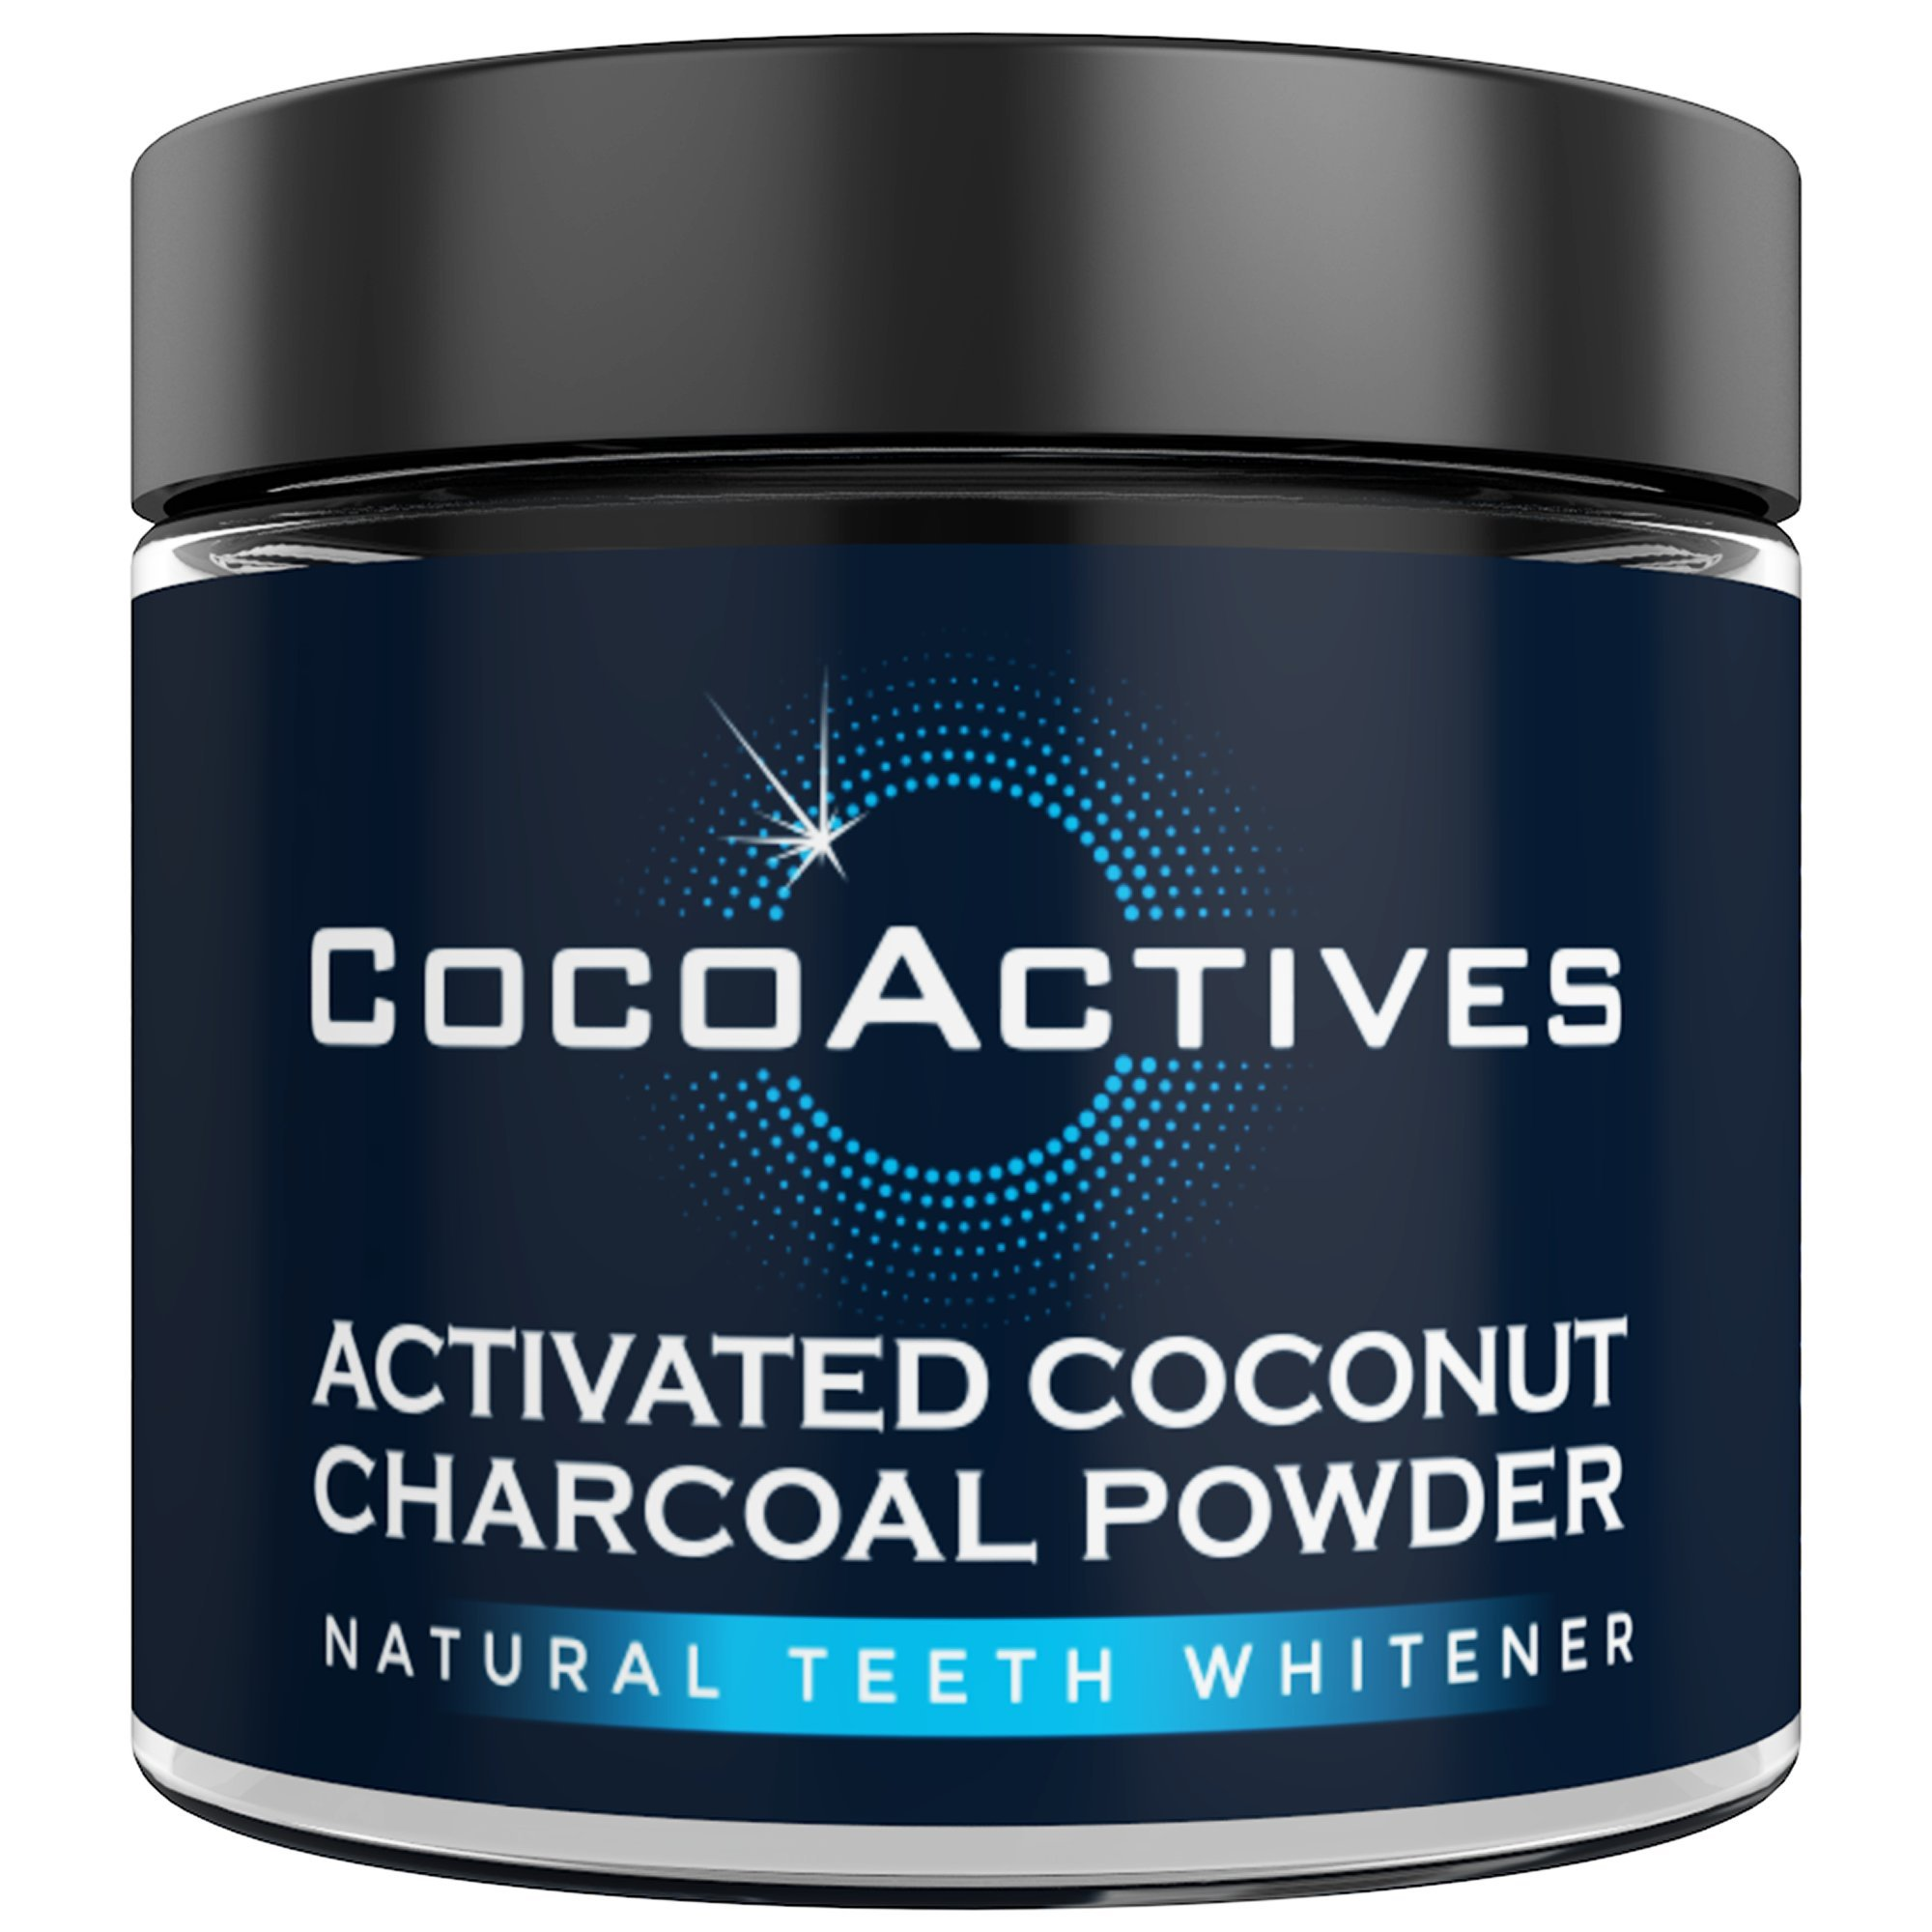 Stocking Stuffers - Activated Charcoal Teeth Whitening Powder - by CocoActives - Tooth Powder, Organic Coconut Charcoal Powder - Natural Teeth Whitening & Tooth Polish- Made in USA, Removes Stains